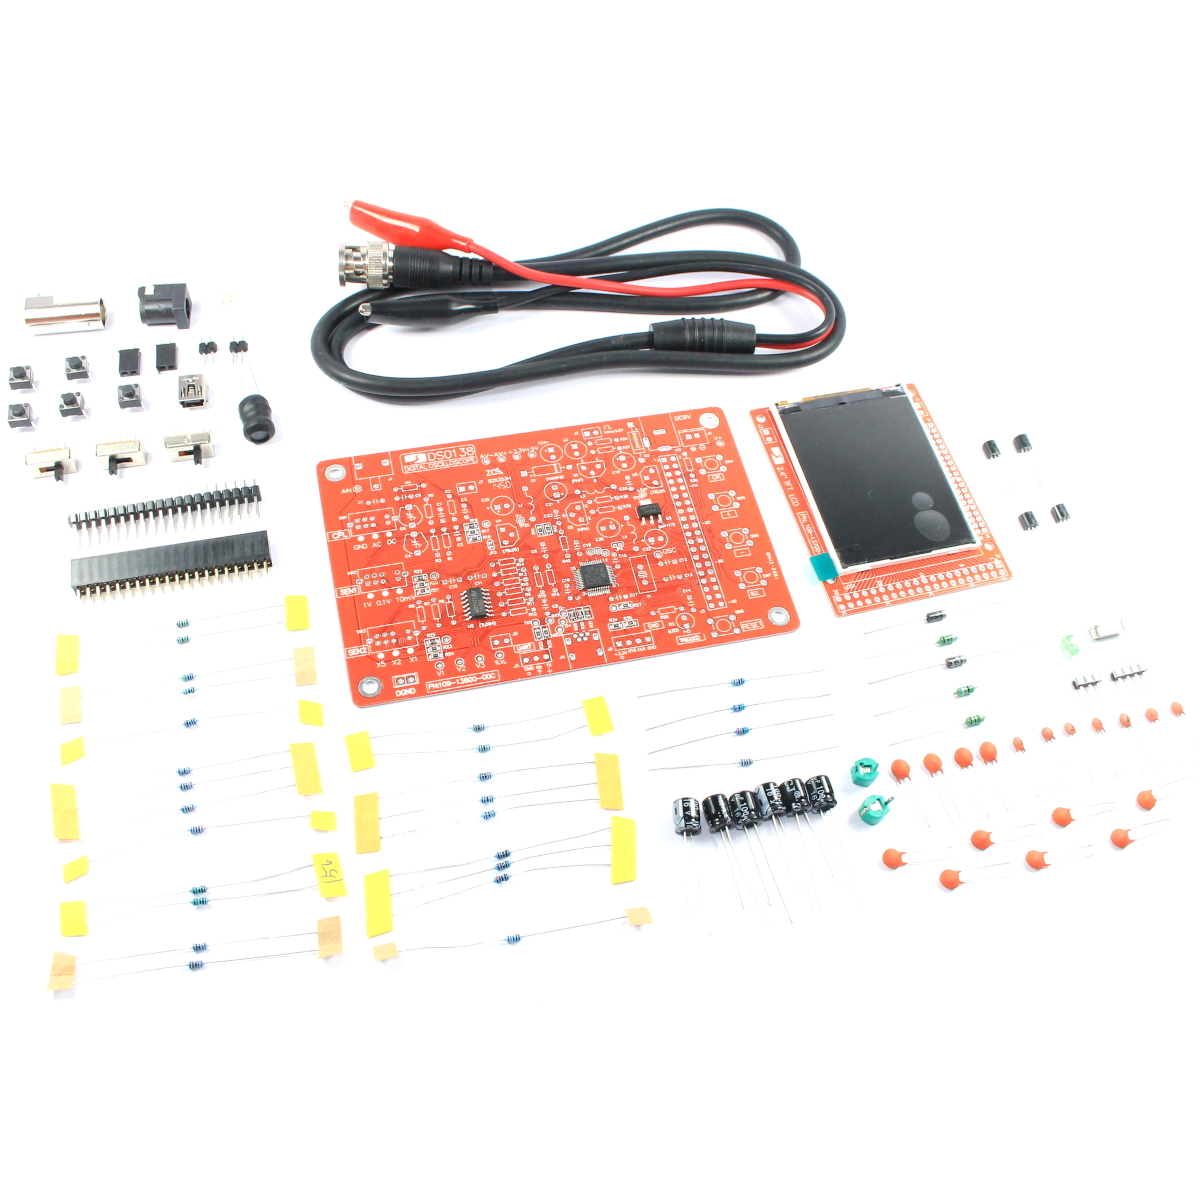 Jye tech dso138 digital oscilloscope kit 13803k unsoldered diy ds0 jye tech dso138 digital oscilloscope kit 13803k unsoldered diy ds0 flux workshop ebay solutioingenieria Image collections